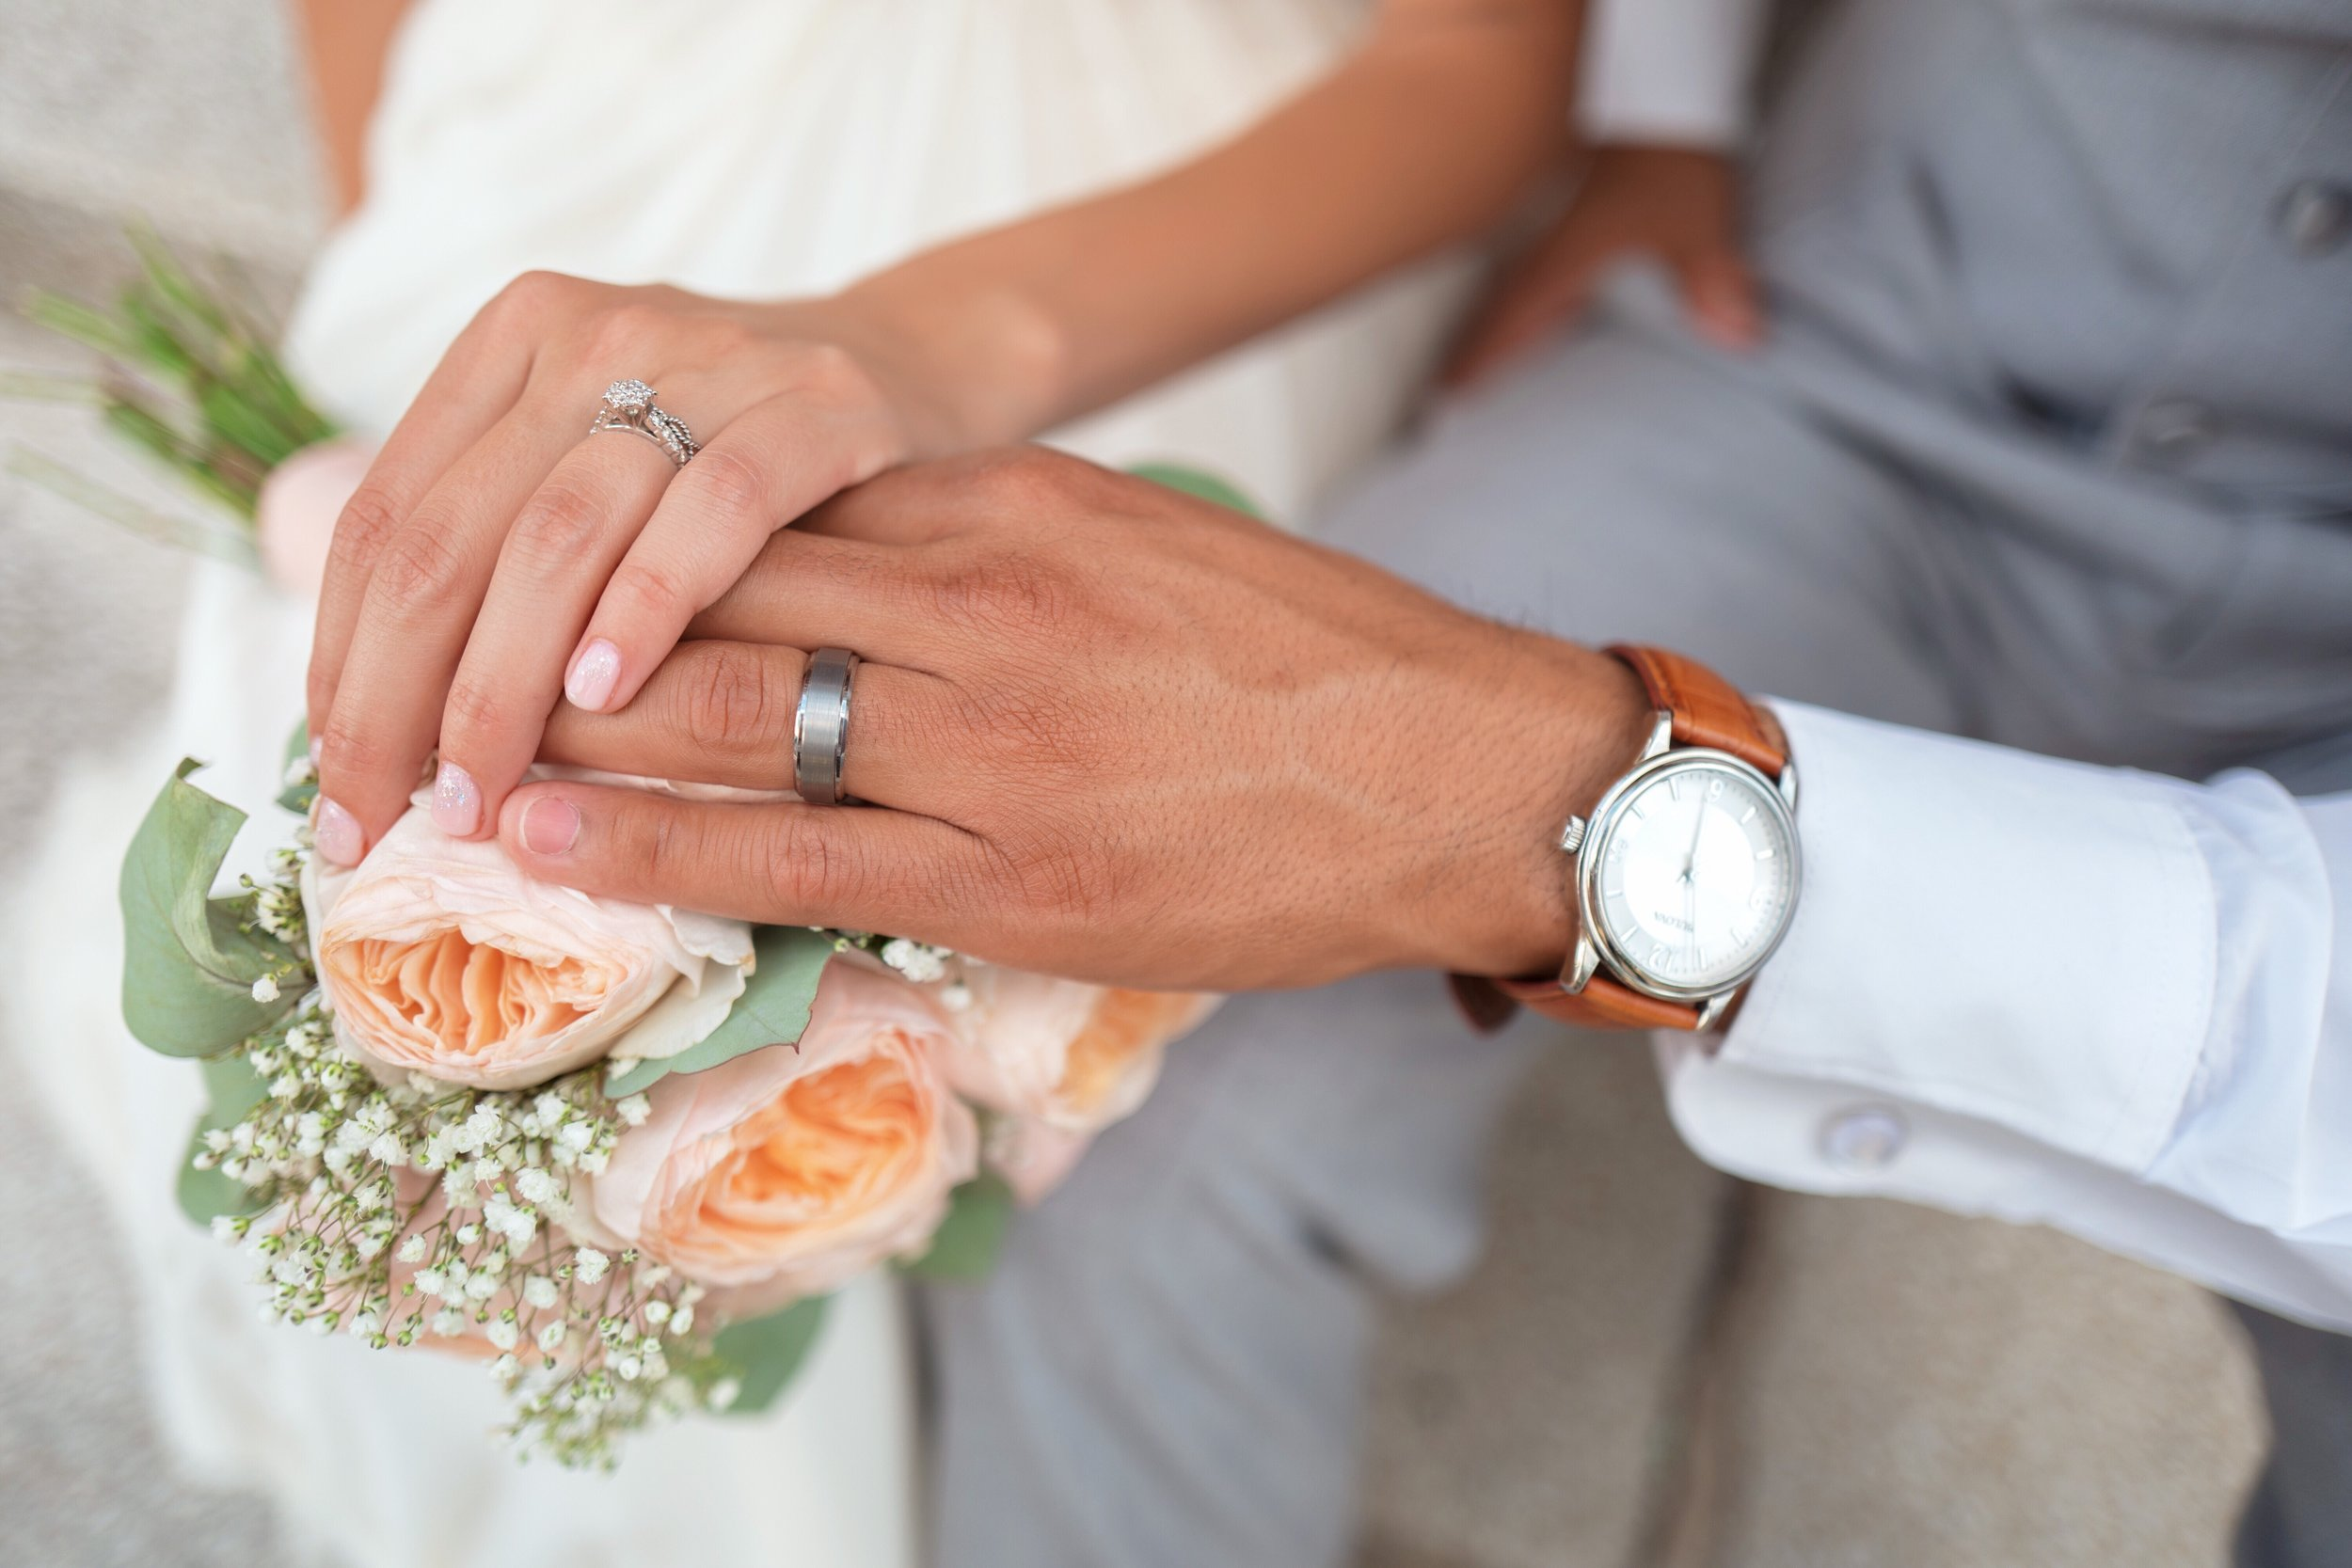 Protect your wedding day with best-in-class insurance. It's simple with Online INsurance Hub.